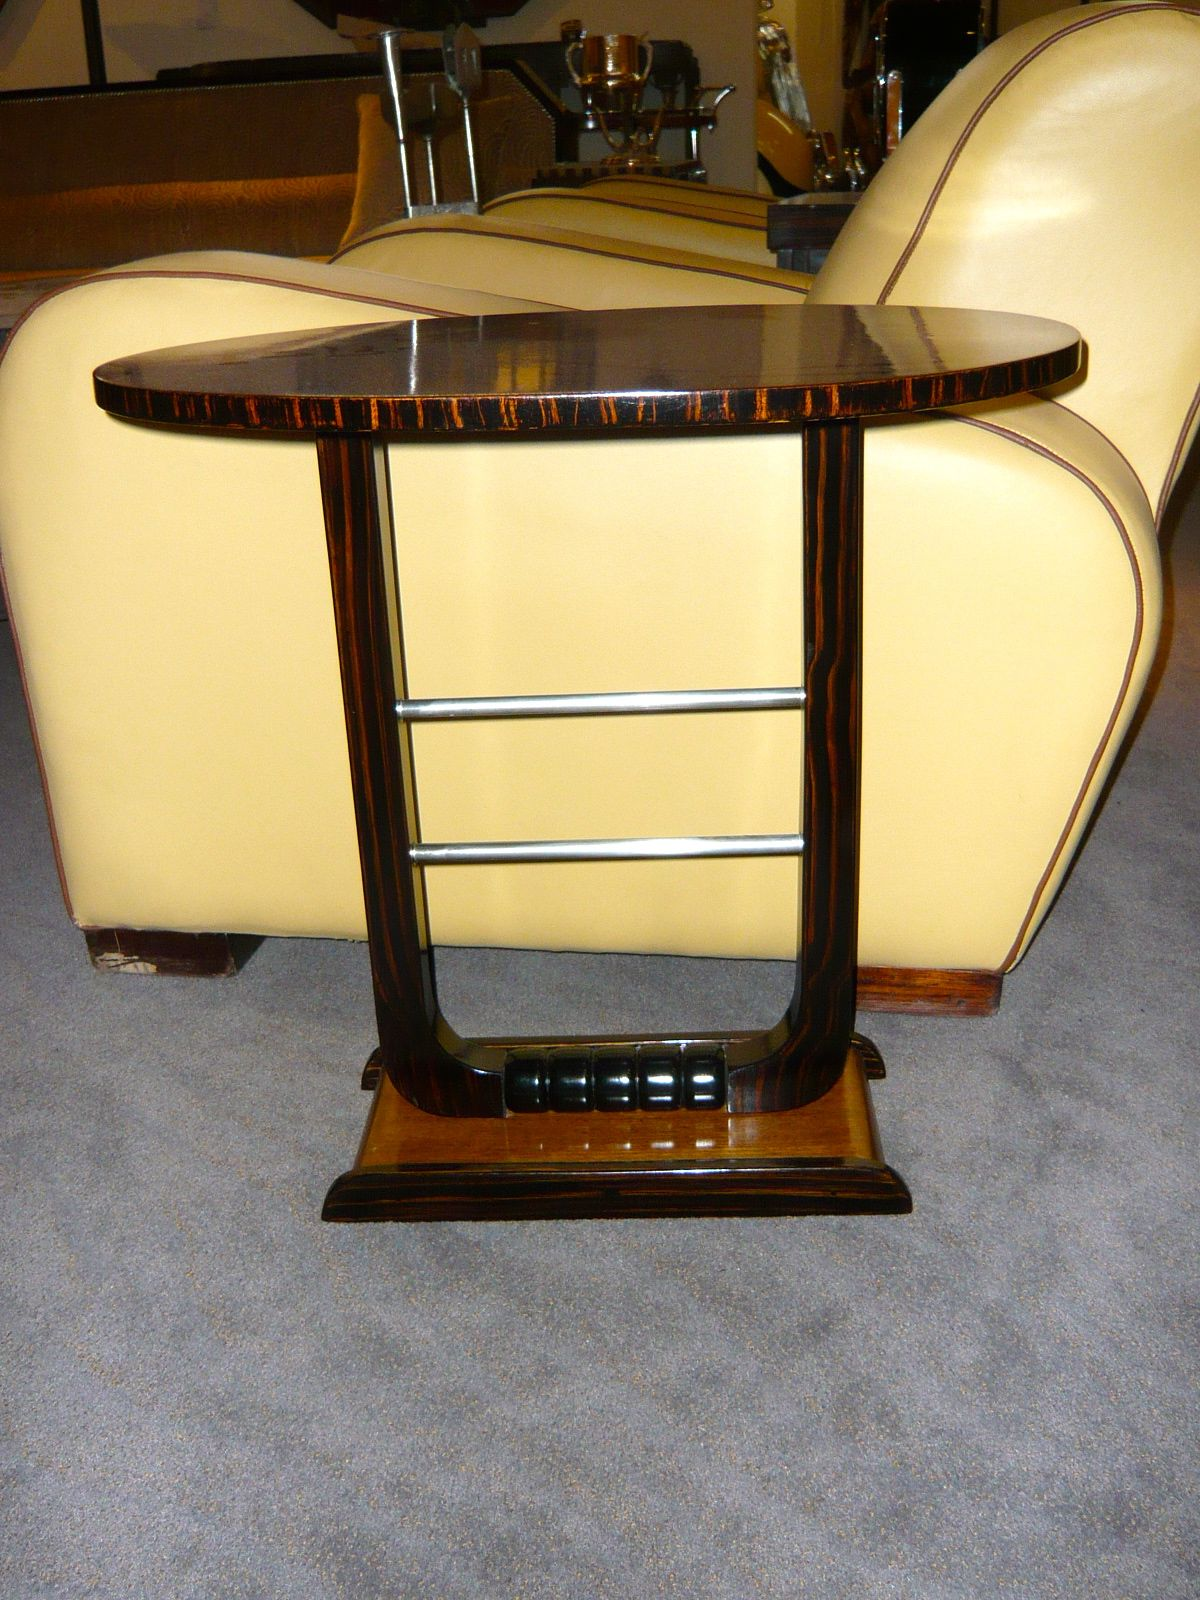 Art Deco Cocktail or Smoking Table - Side table